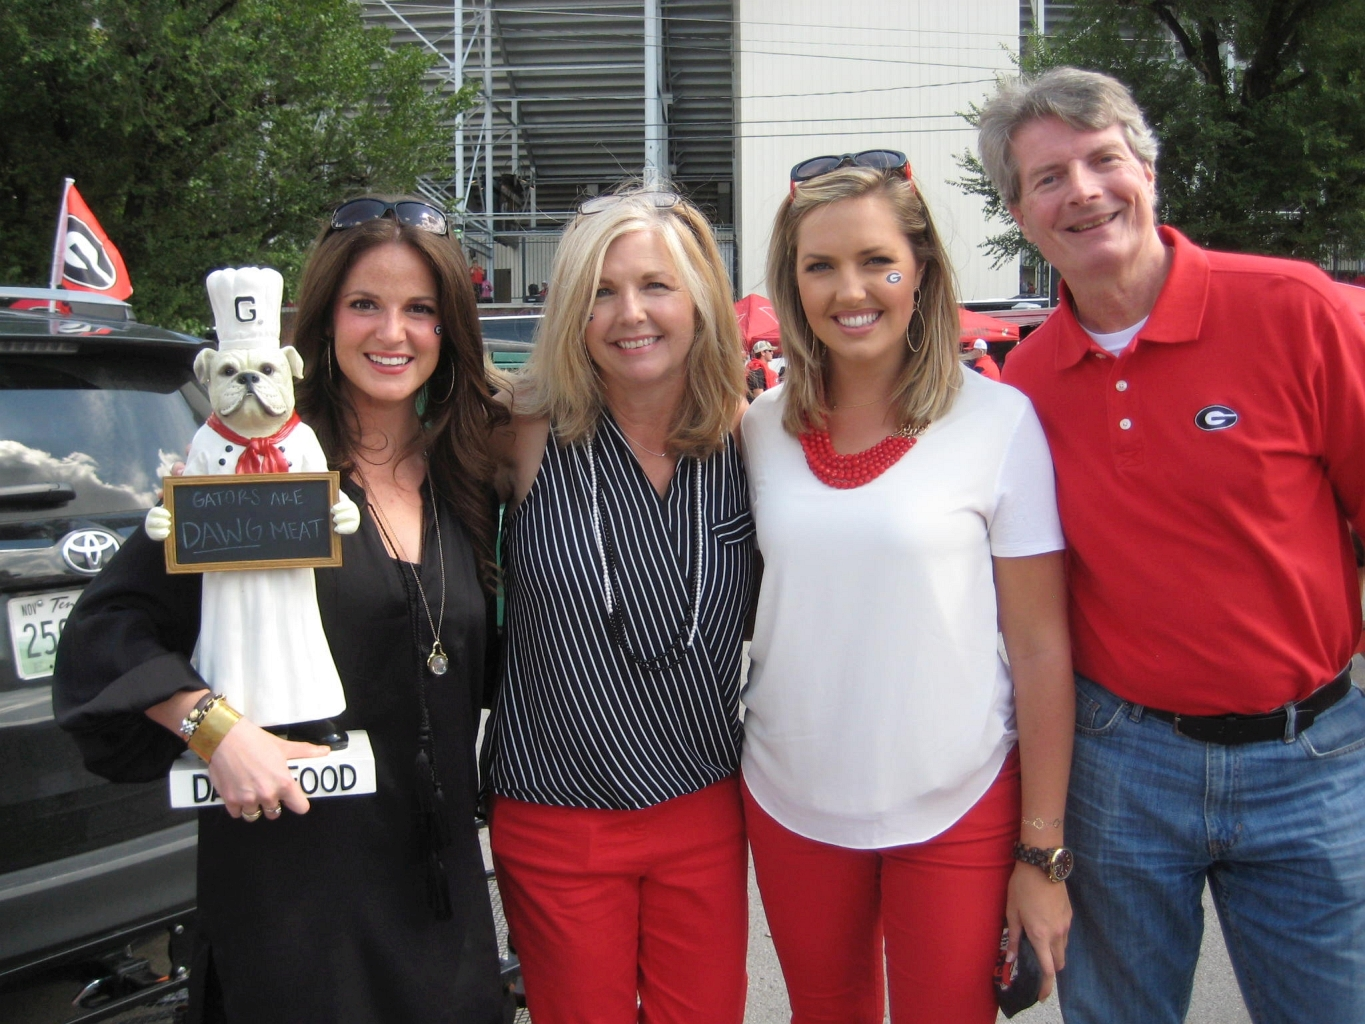 Alysse Whatley, Kathy Ethridge, Christie Ethridge and David Ethridge  - UGA vs. Vandy 12-Sept-2015 (Photo by Cheri and Vance Leavy)